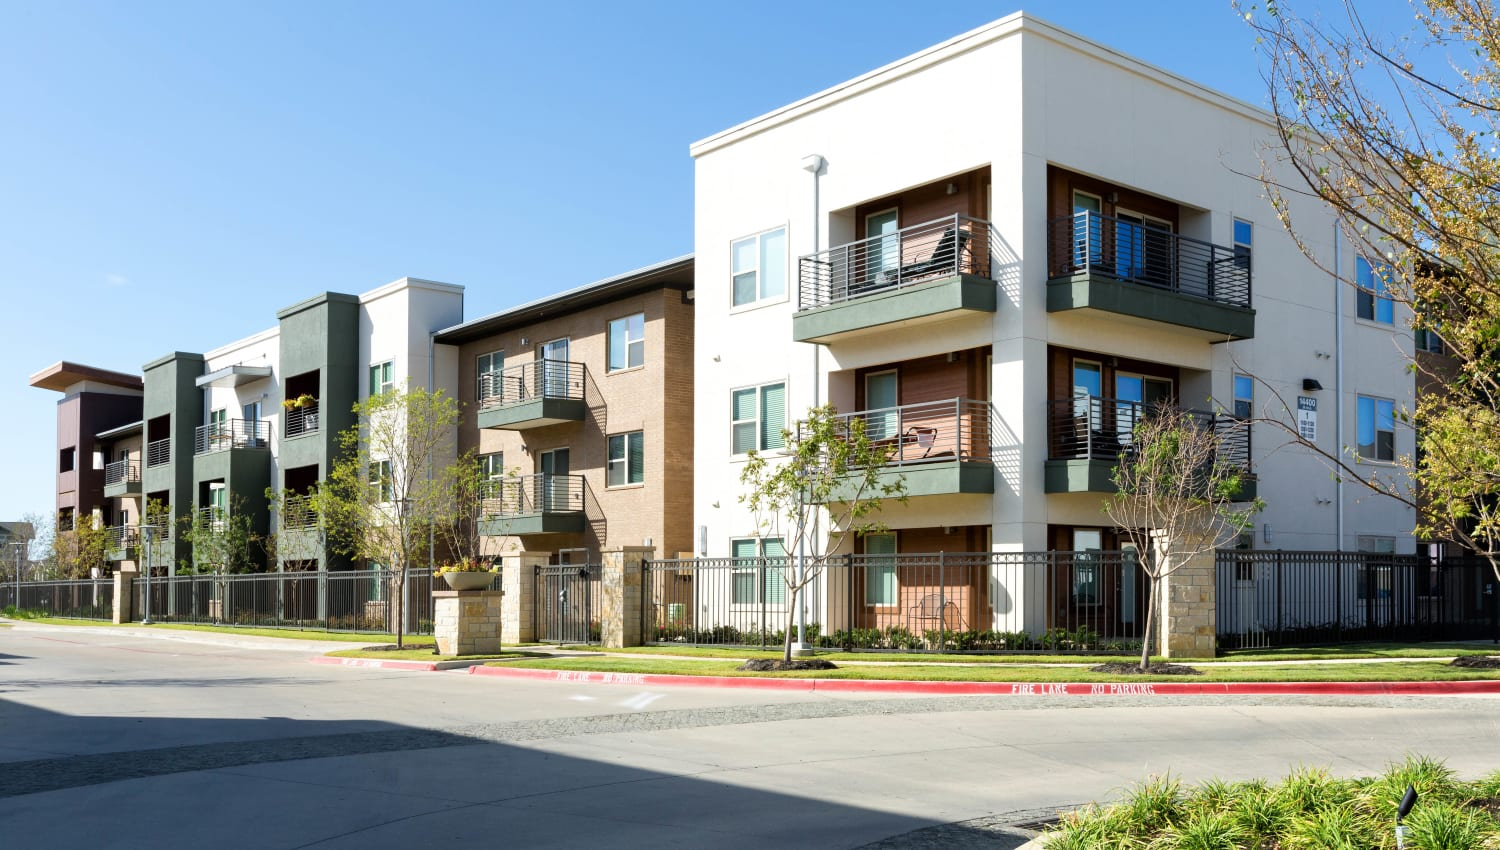 Exterior view of resident buildings at our luxury community at The Davis in Fort Worth, Texas